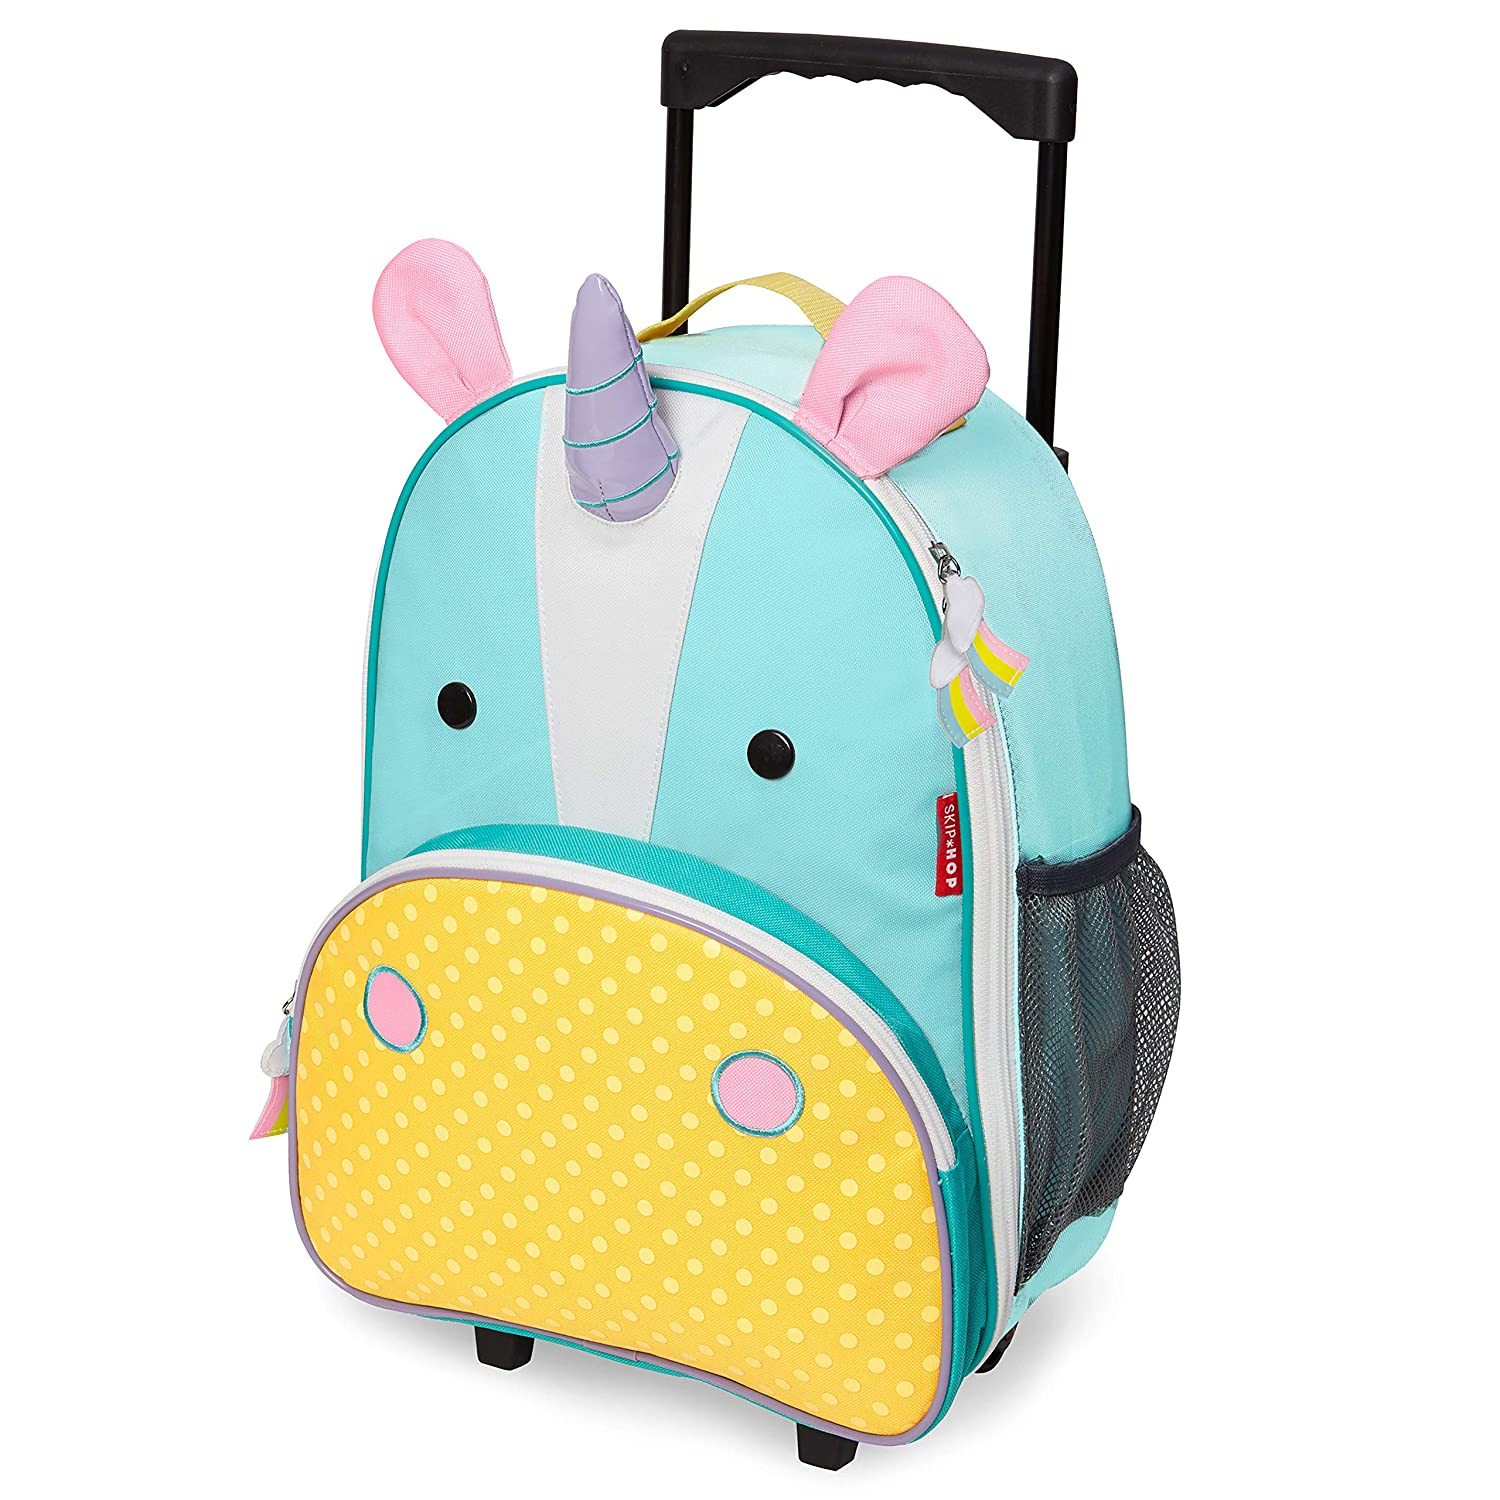 Skip Hop Kids Luggage with Wheels